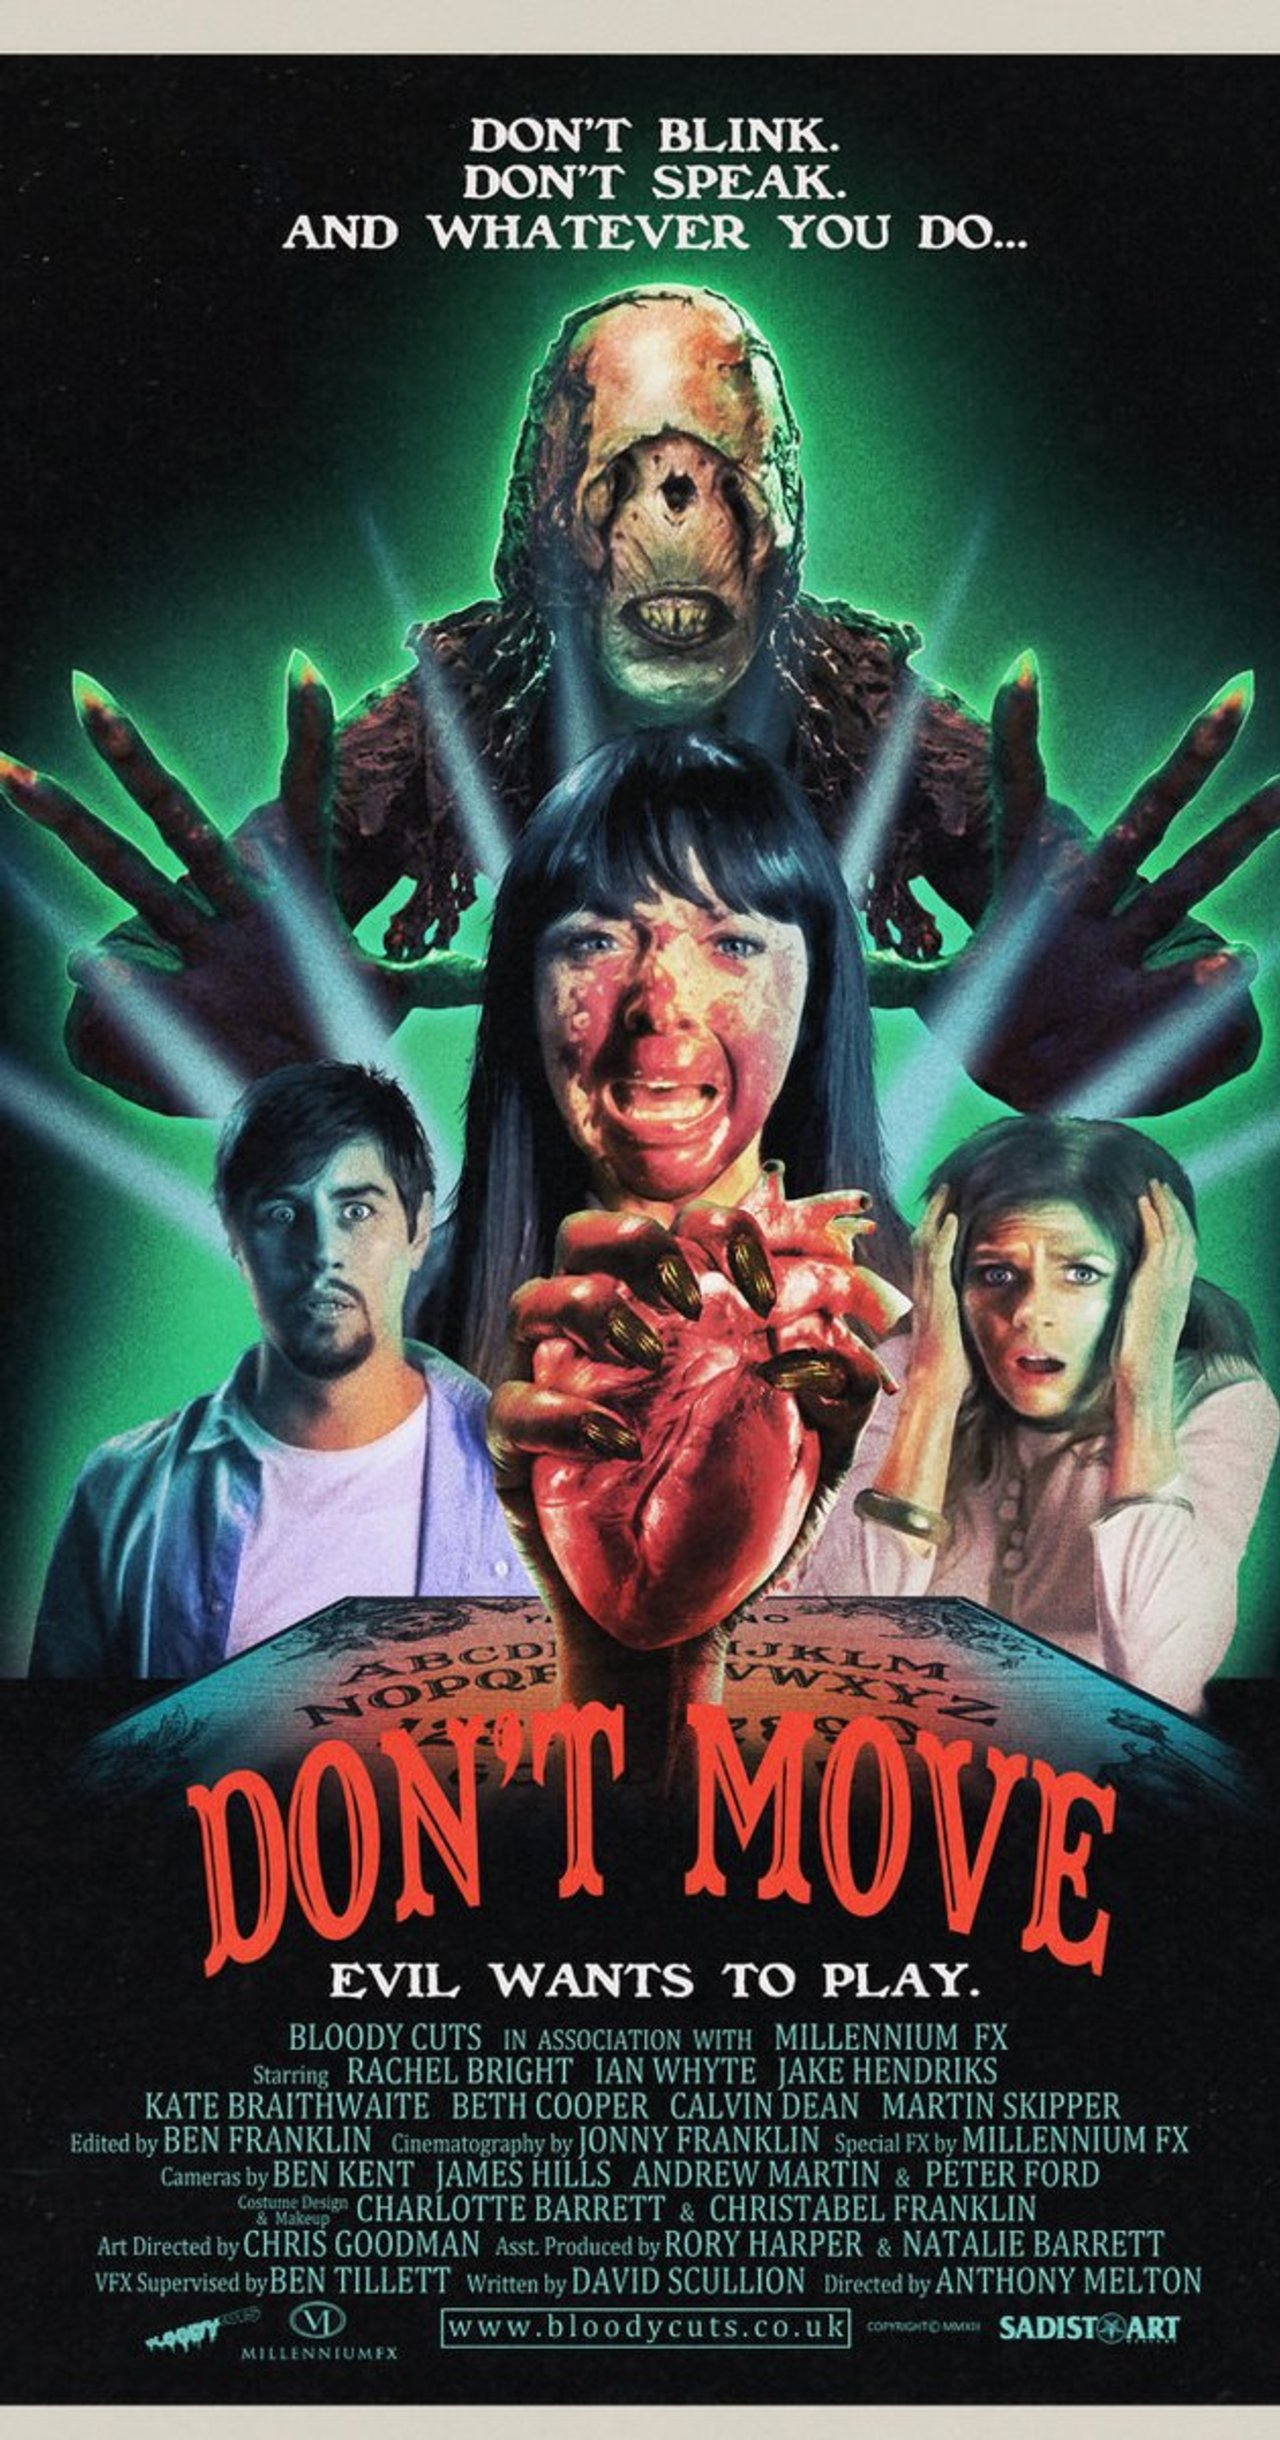 DON'T MOVE, dir. Anthony Melton (2013)